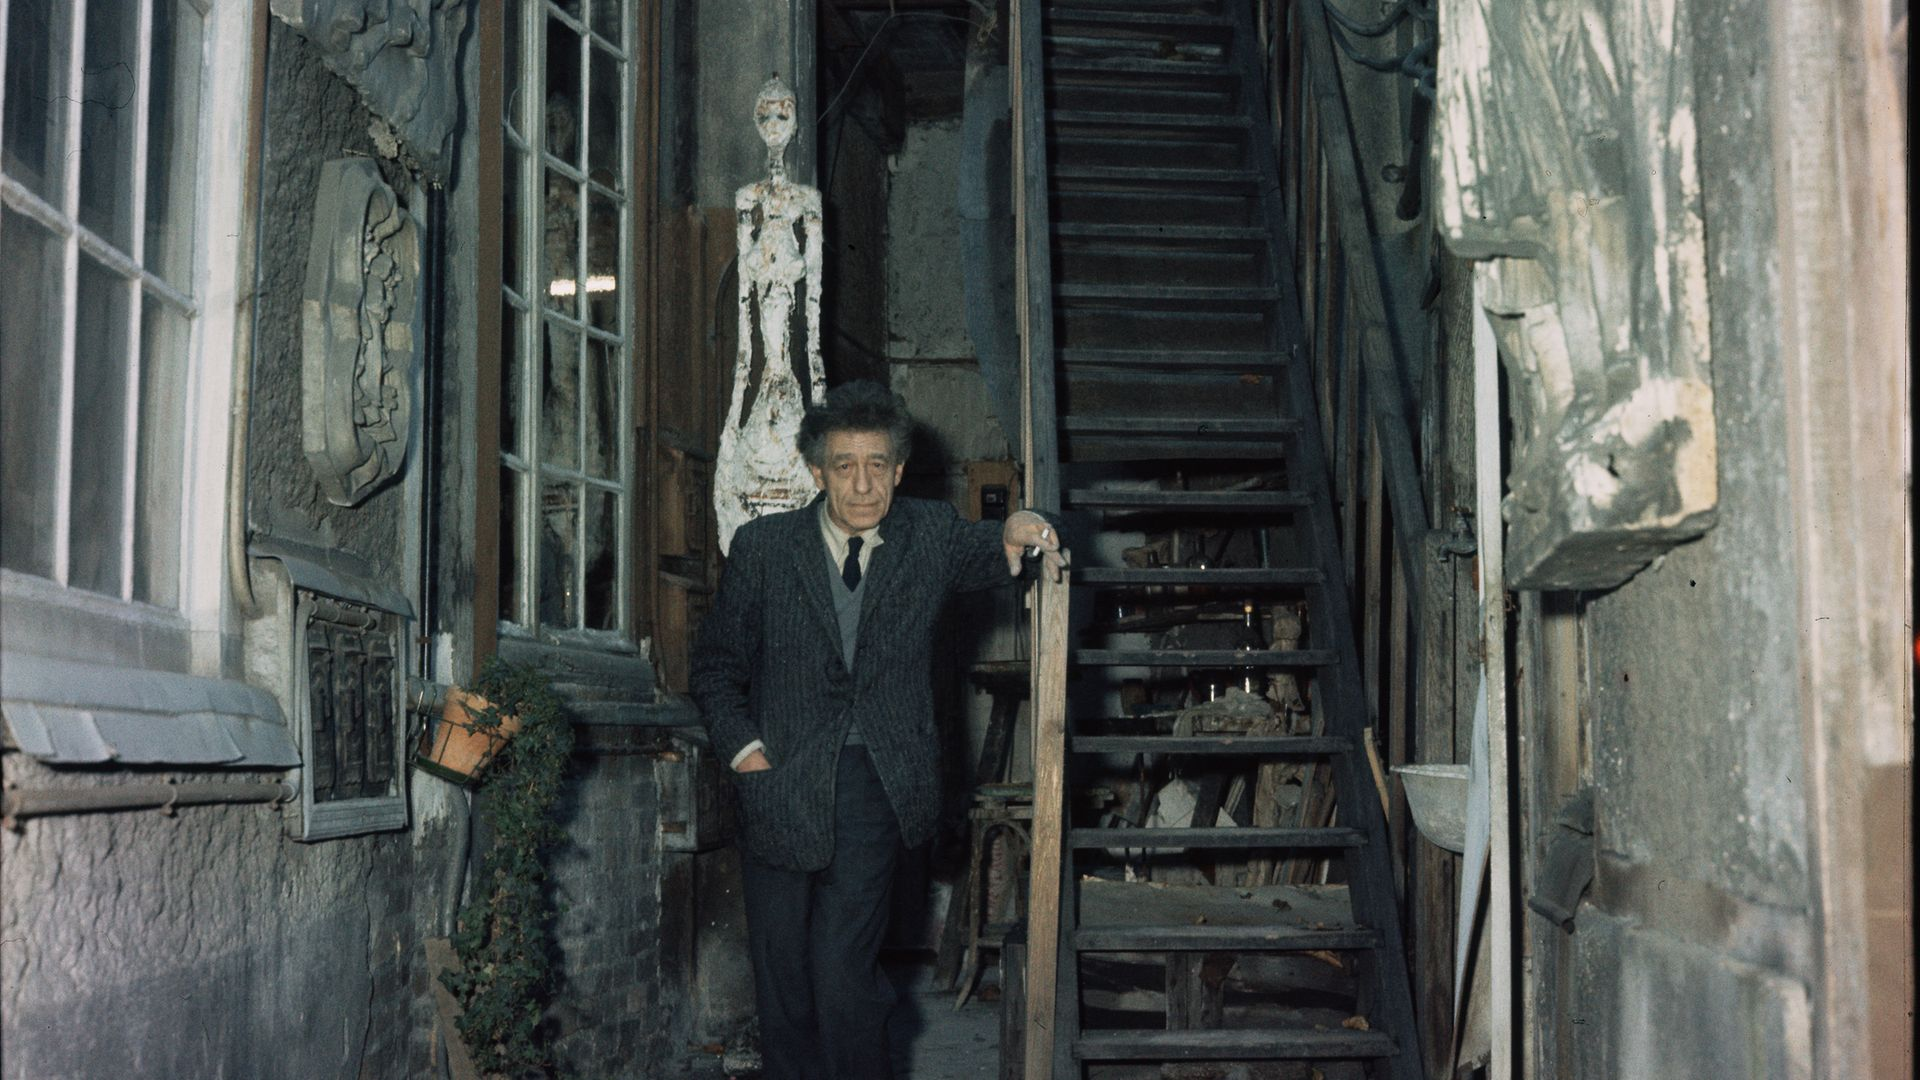 Alberto Giacometti stands in the stairwell to his house, where the walls are decorated with his sculptures, 1958 - Credit: Corbis/VCG via Getty Images